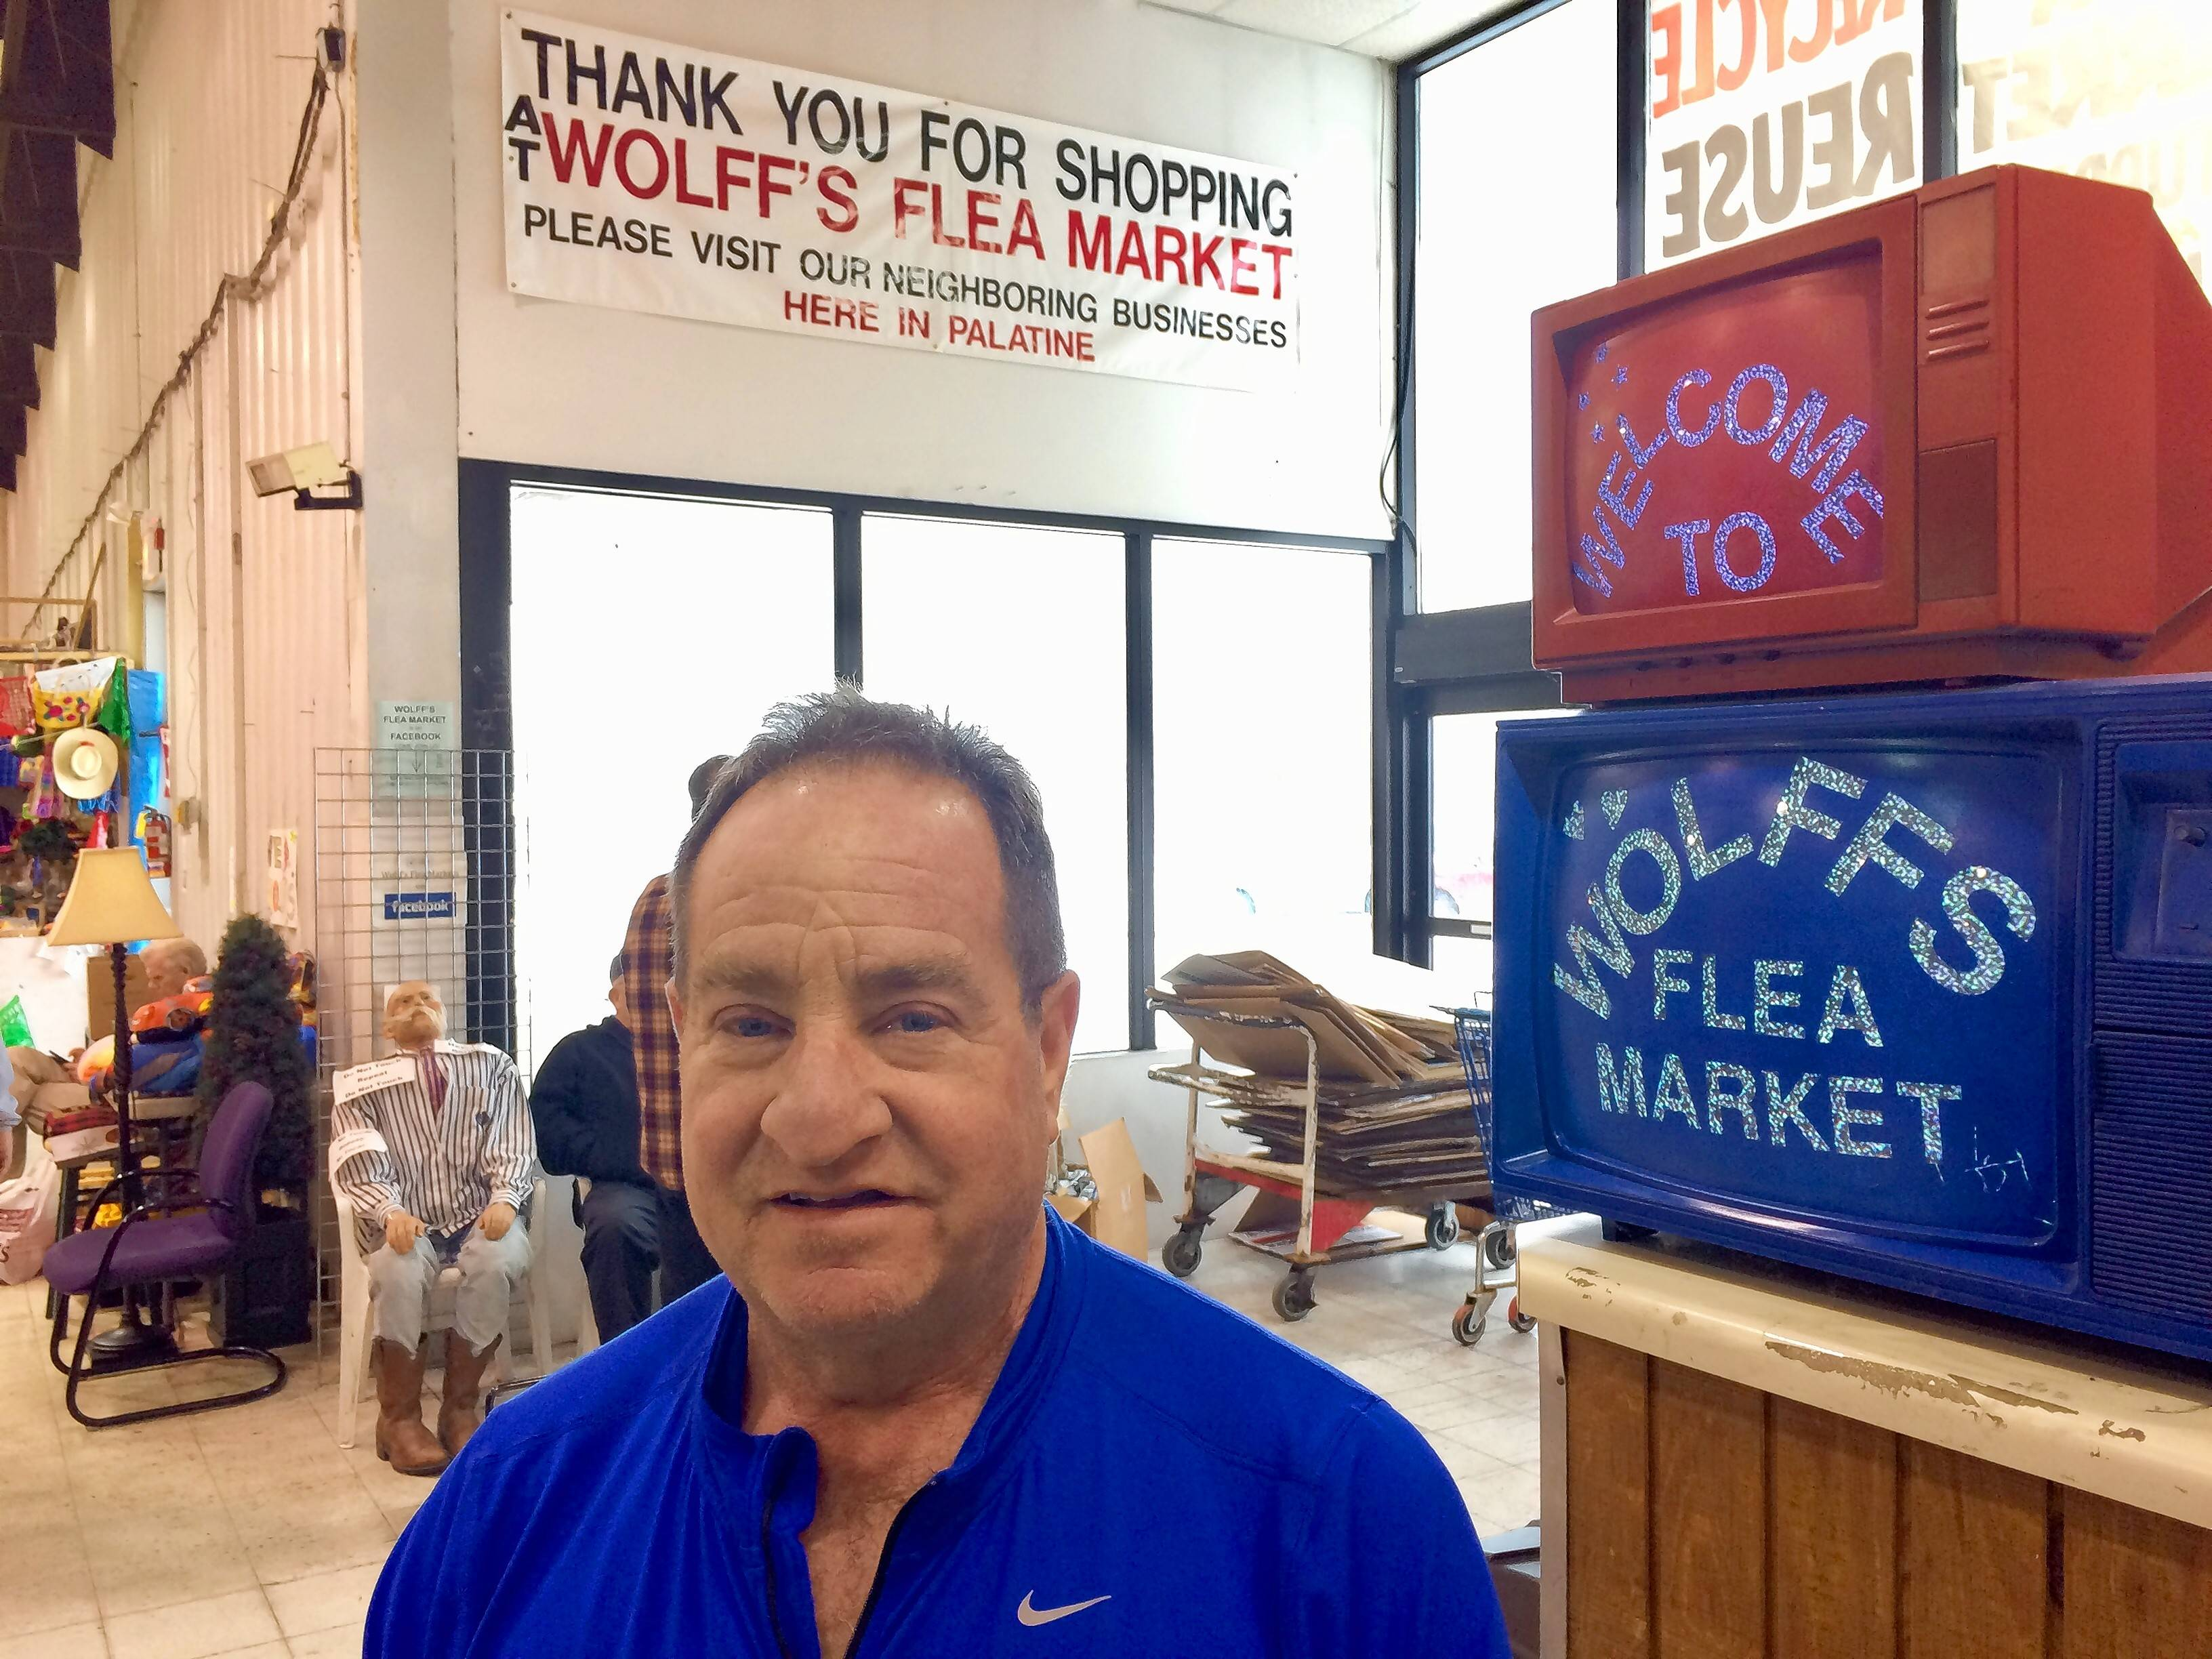 Wolff's Flea Market is heading toward its final two weekends of operation at a former Menards on Rand Road in Palatine. Co-owner Don Wolff says he'll miss being in Palatine.